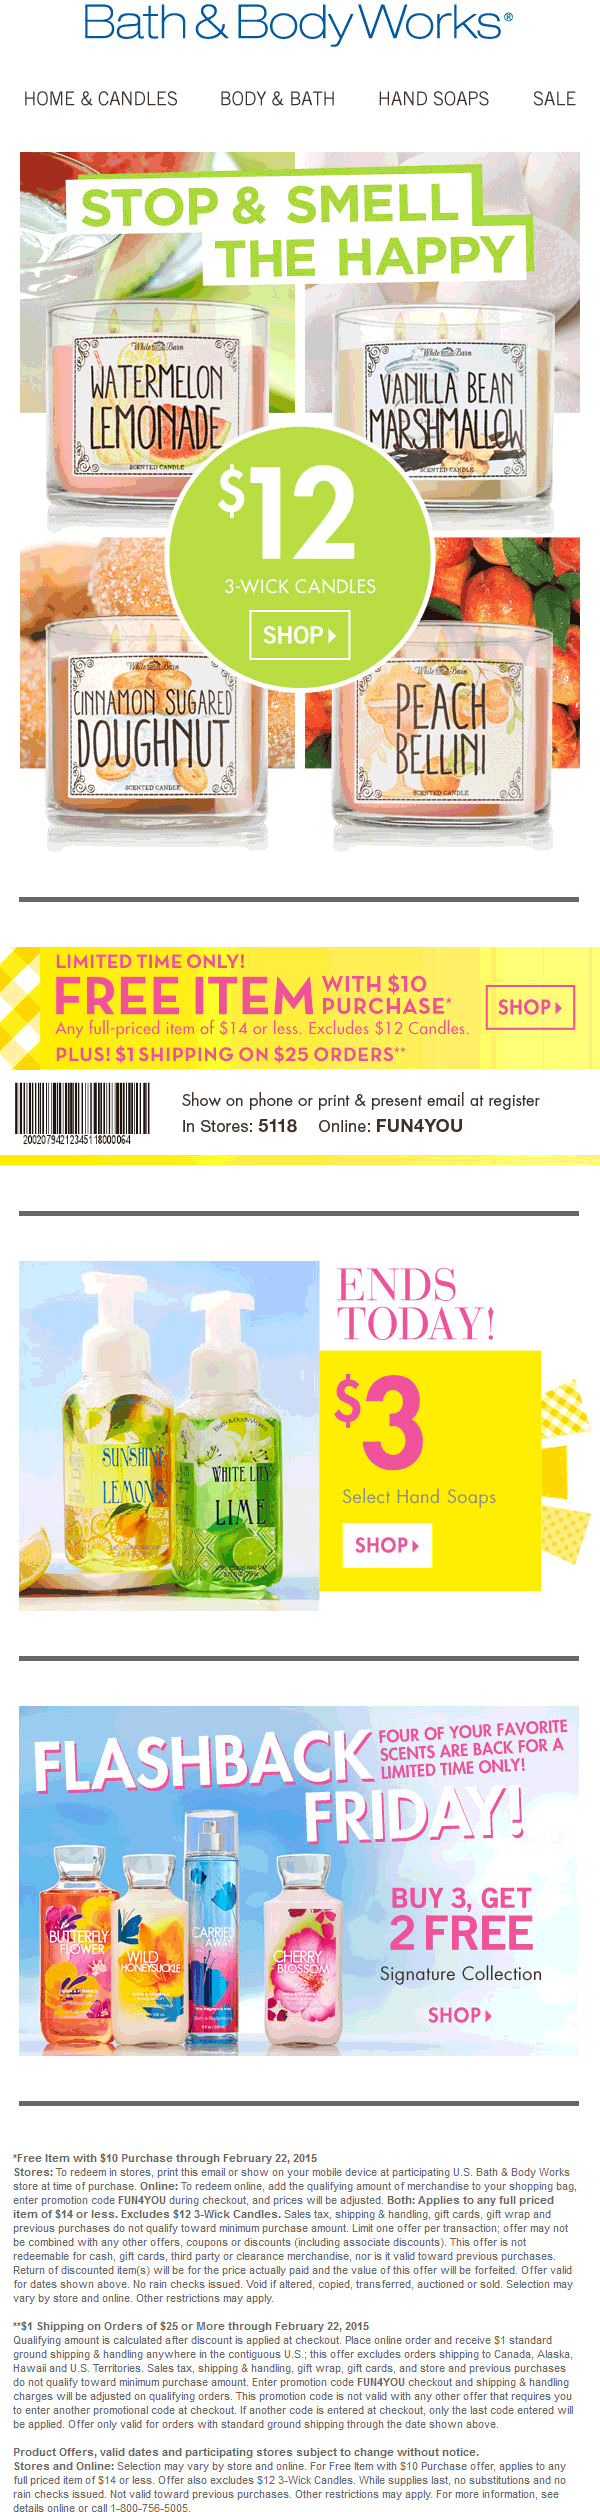 Bath & Body Works Coupon February 2019 Any $14 item free with $10 spent at Bath & Body Works, or online via promo code FUN4YOU